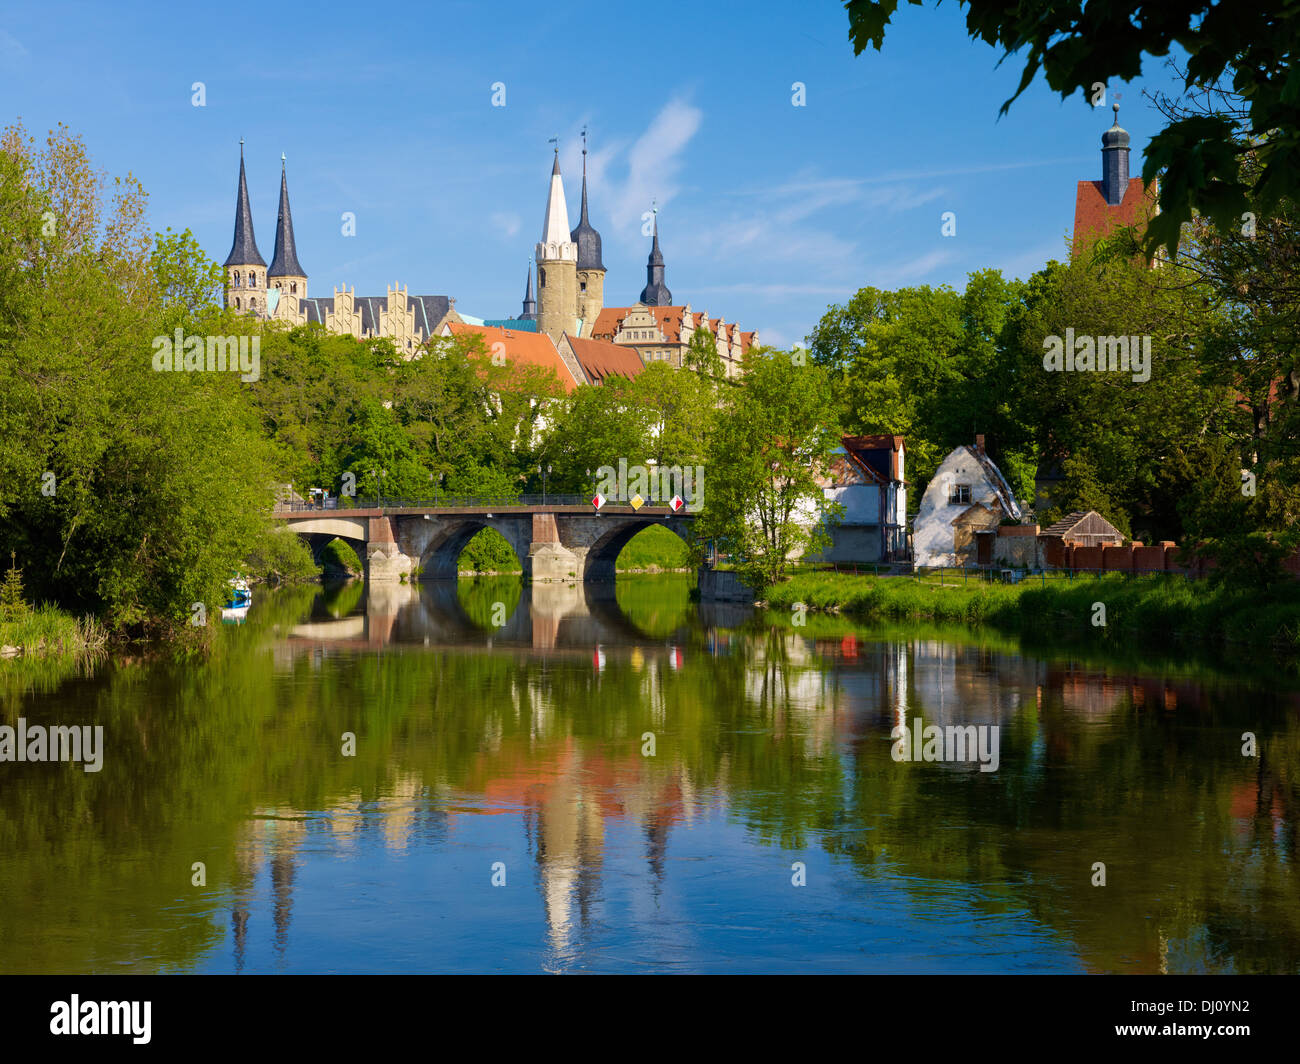 Merseburg Cathedral and Saale River, Merseburg, Saxony-Anhalt, Germany - Stock Image